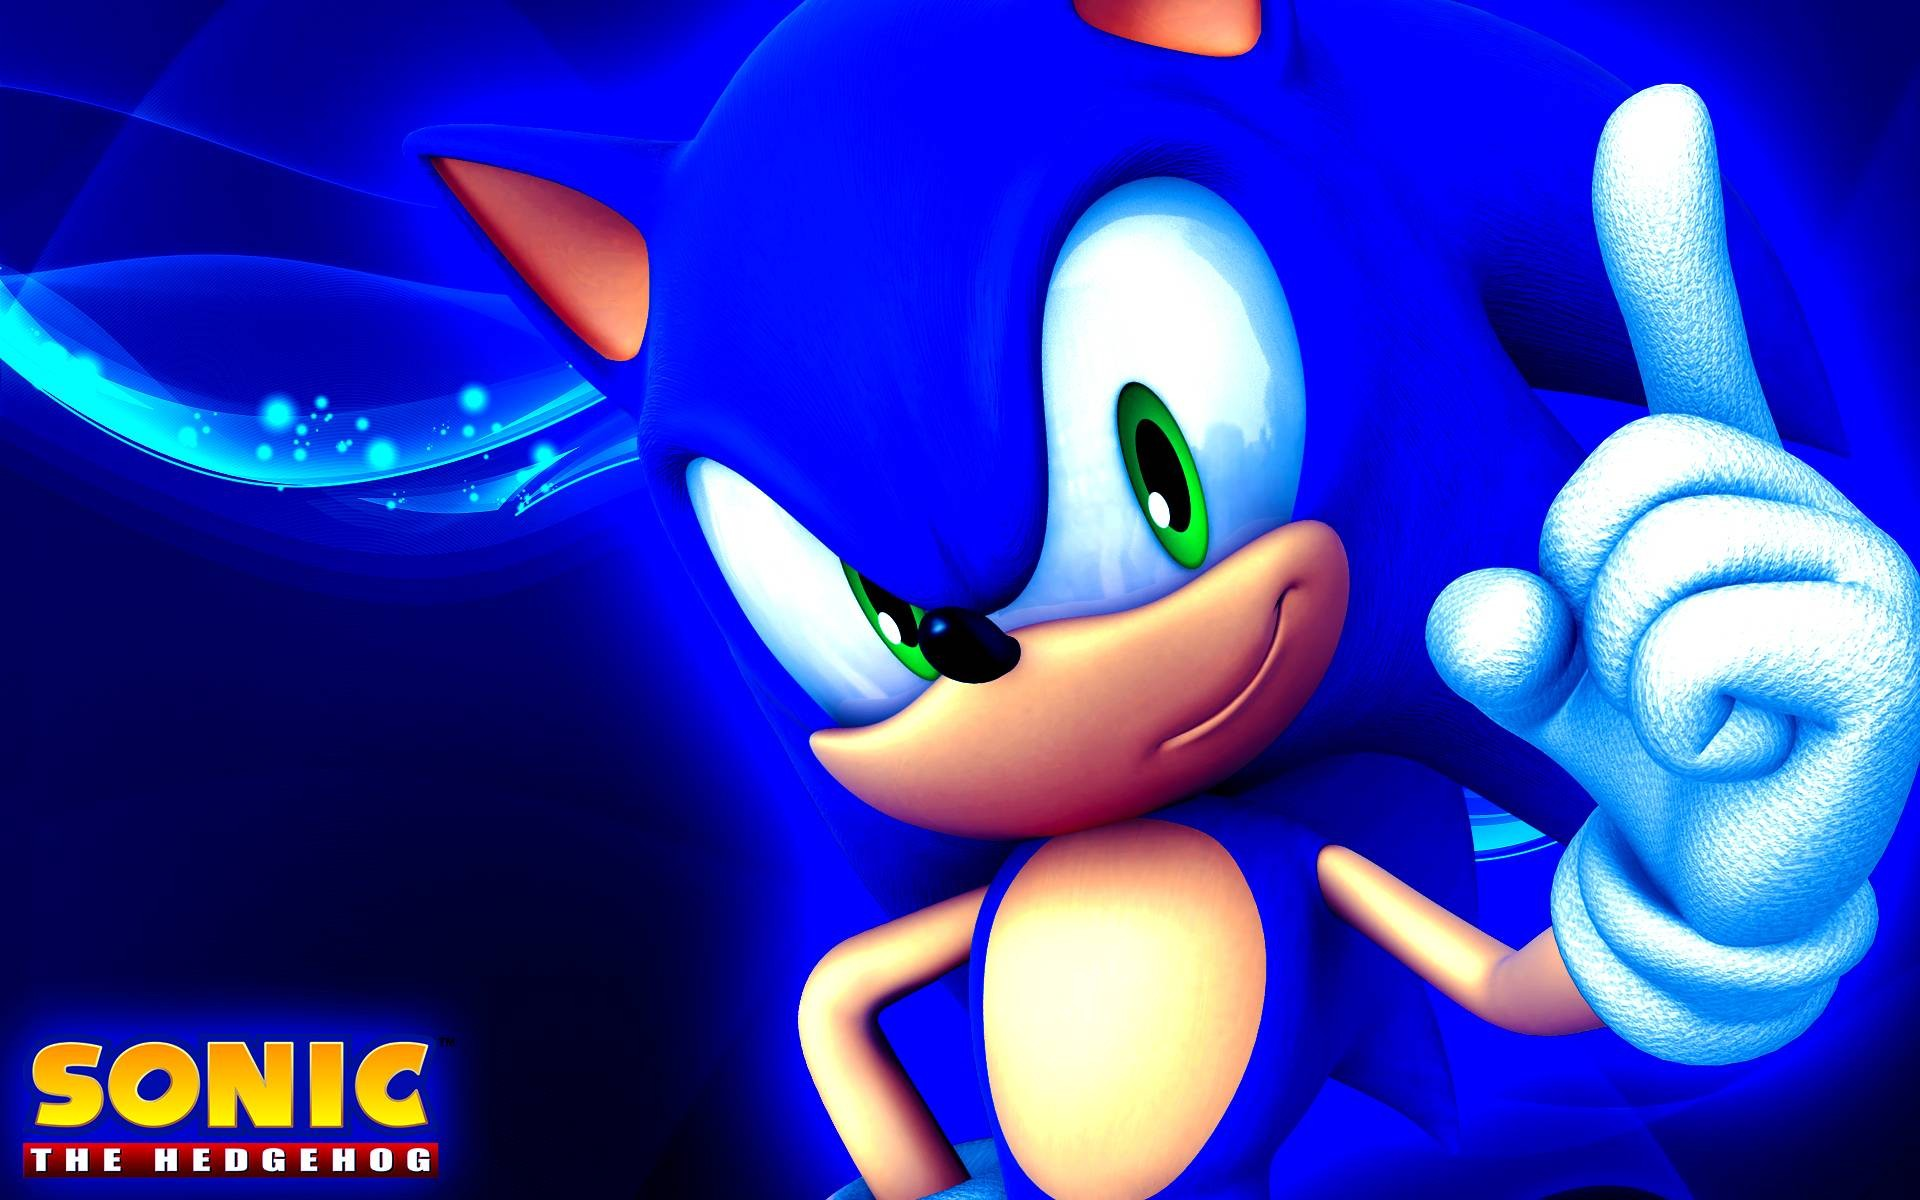 Sonic The Hedgehog Wallpaper Download Free Awesome Full Hd